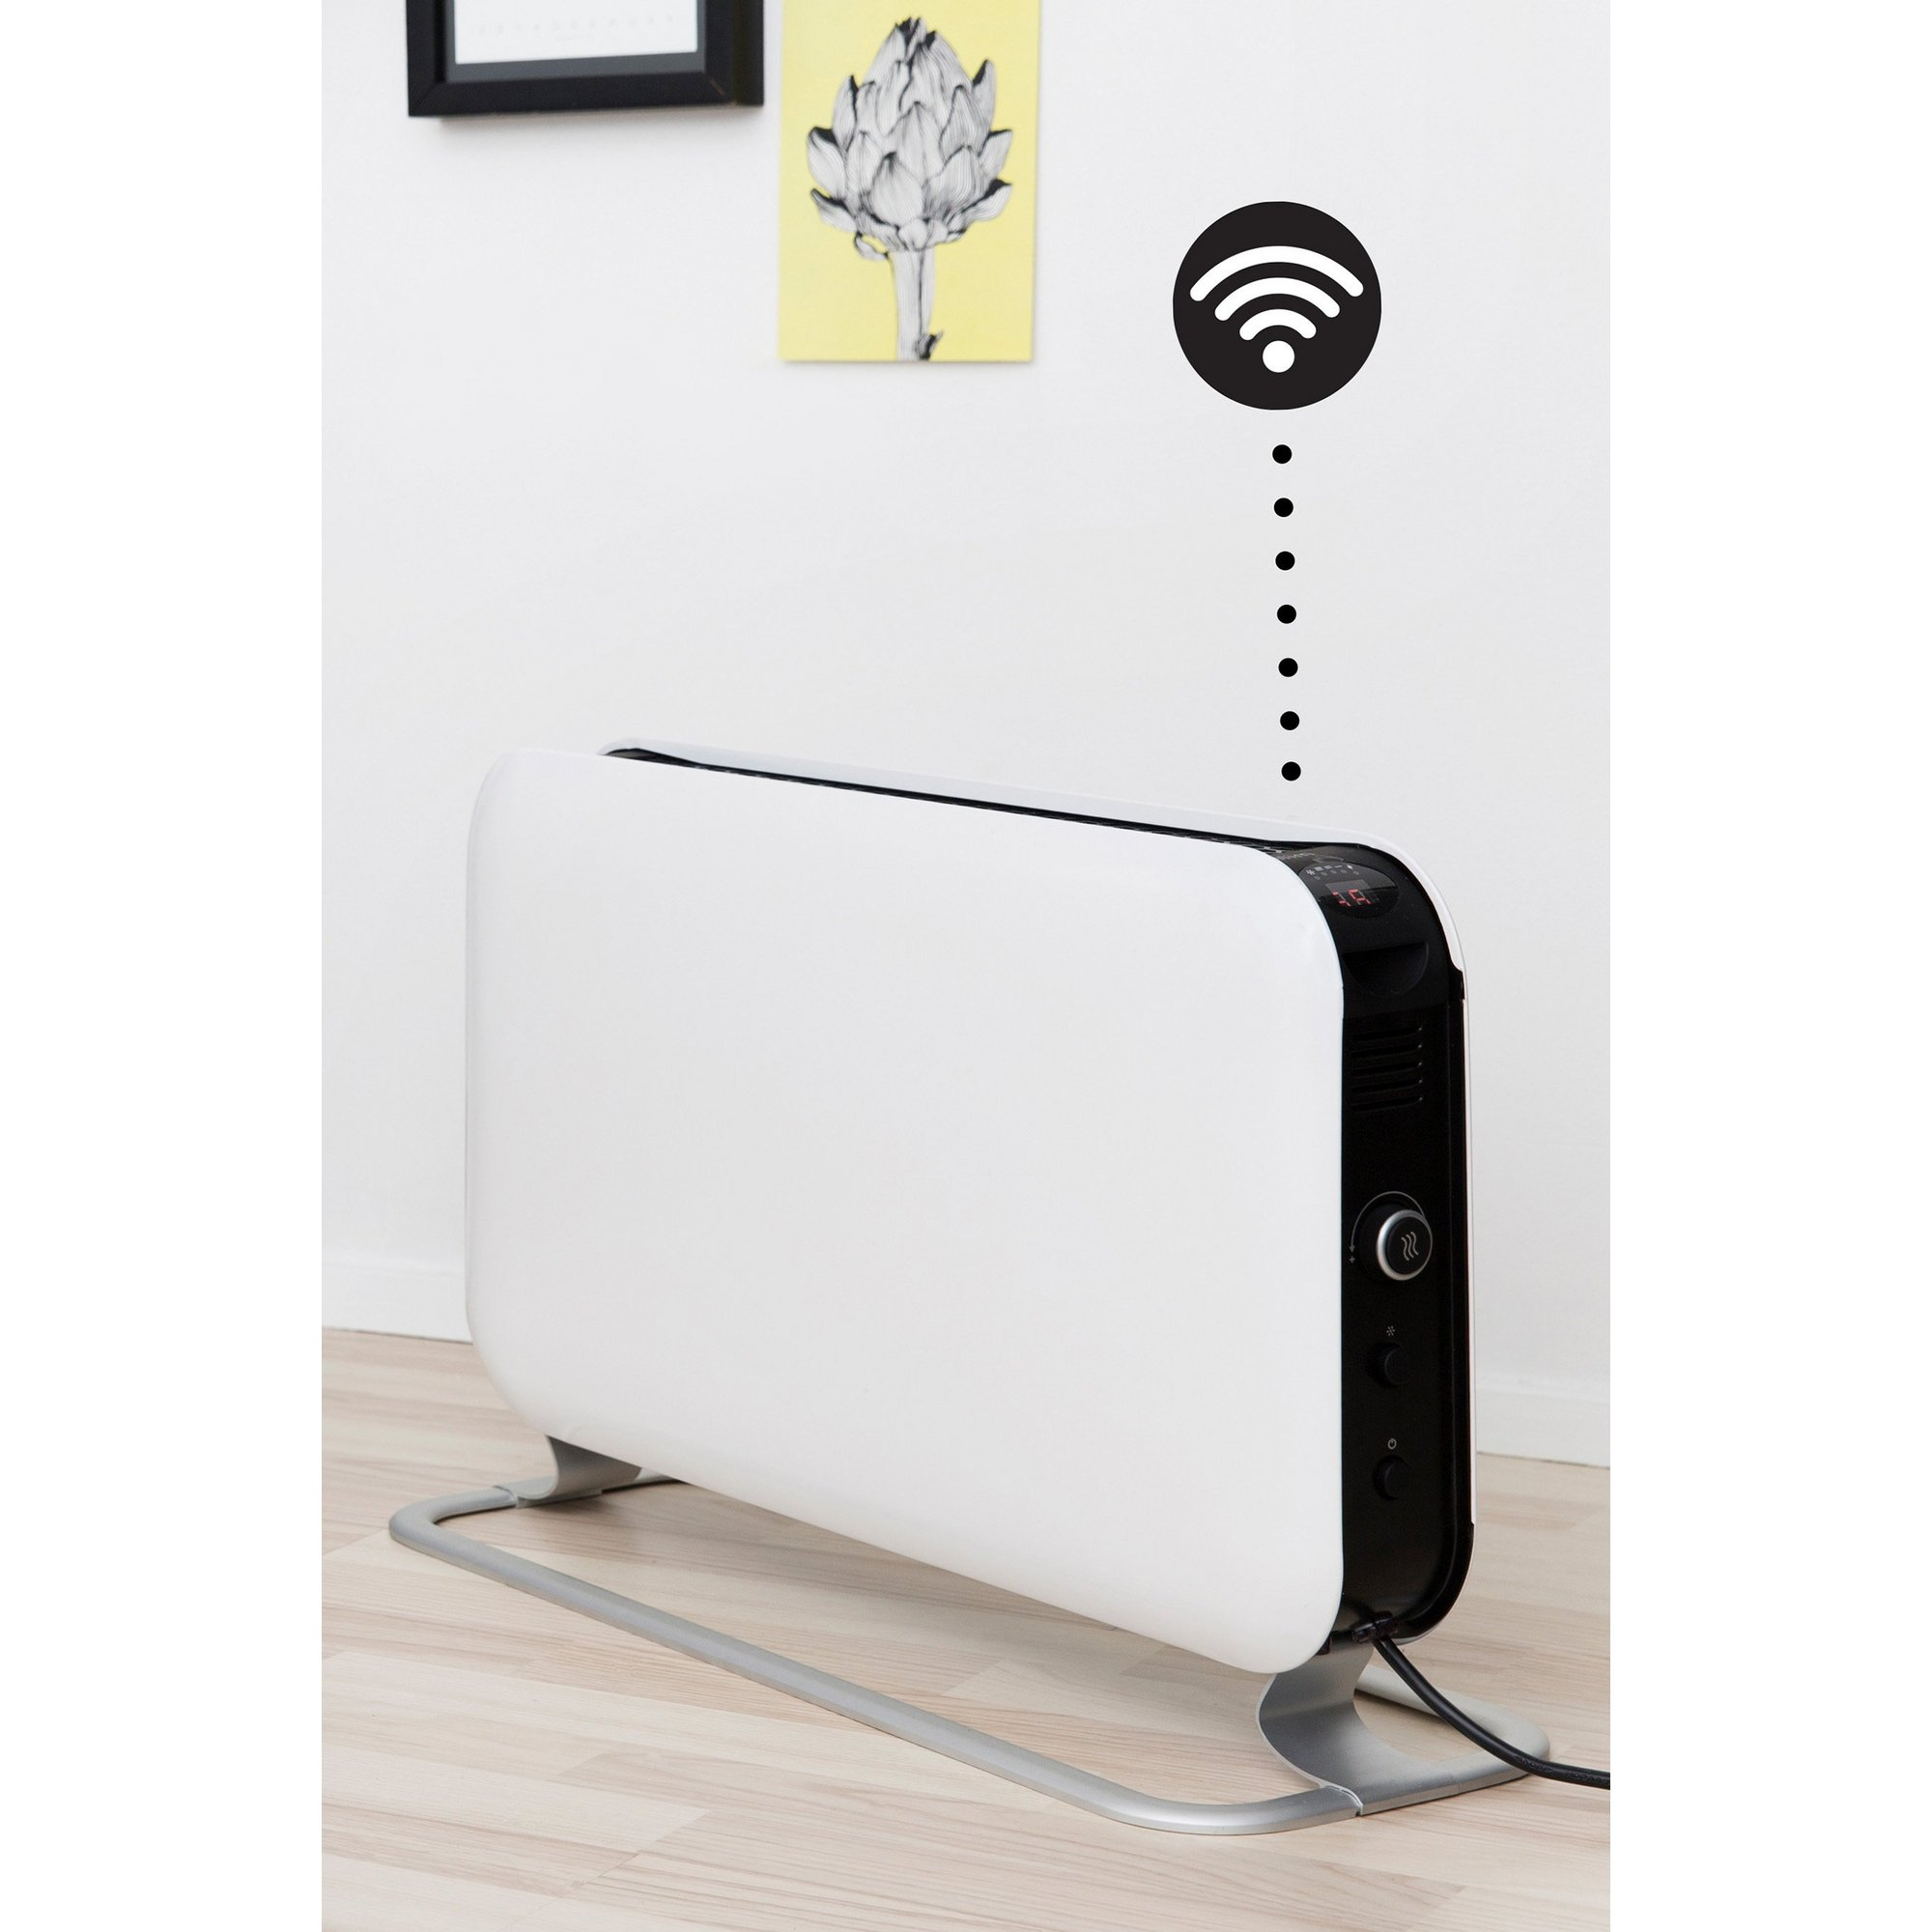 Image of Mill Heat WiFi 1200w LED Convector Heater